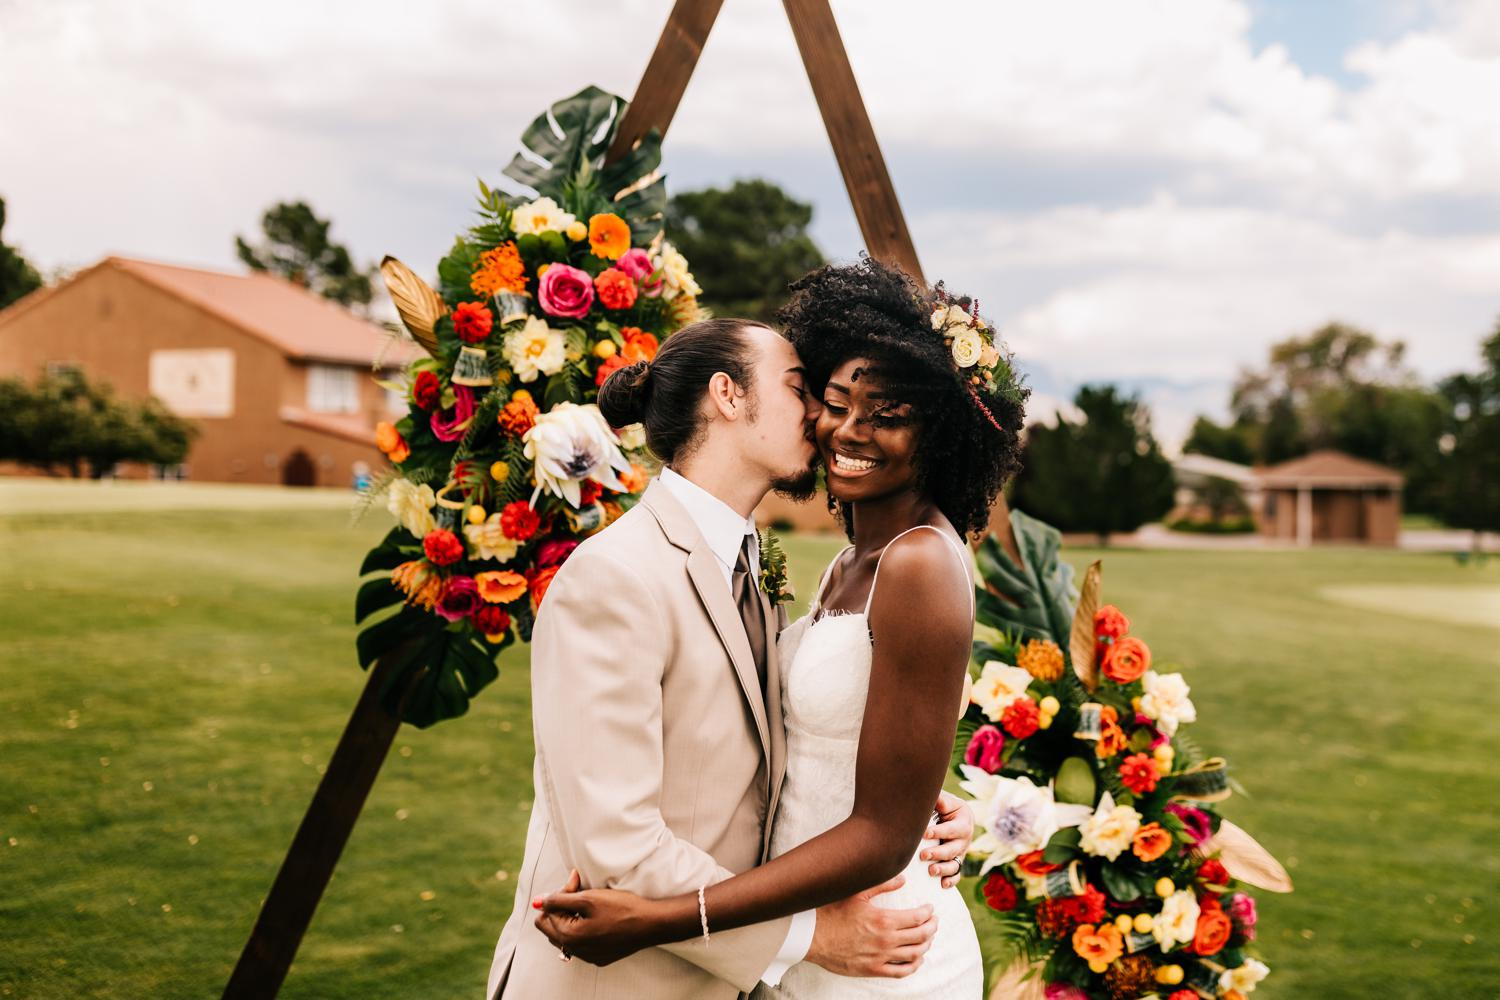 Groom kissing bride under wooden ceremony arch in front of Sandia Mountains